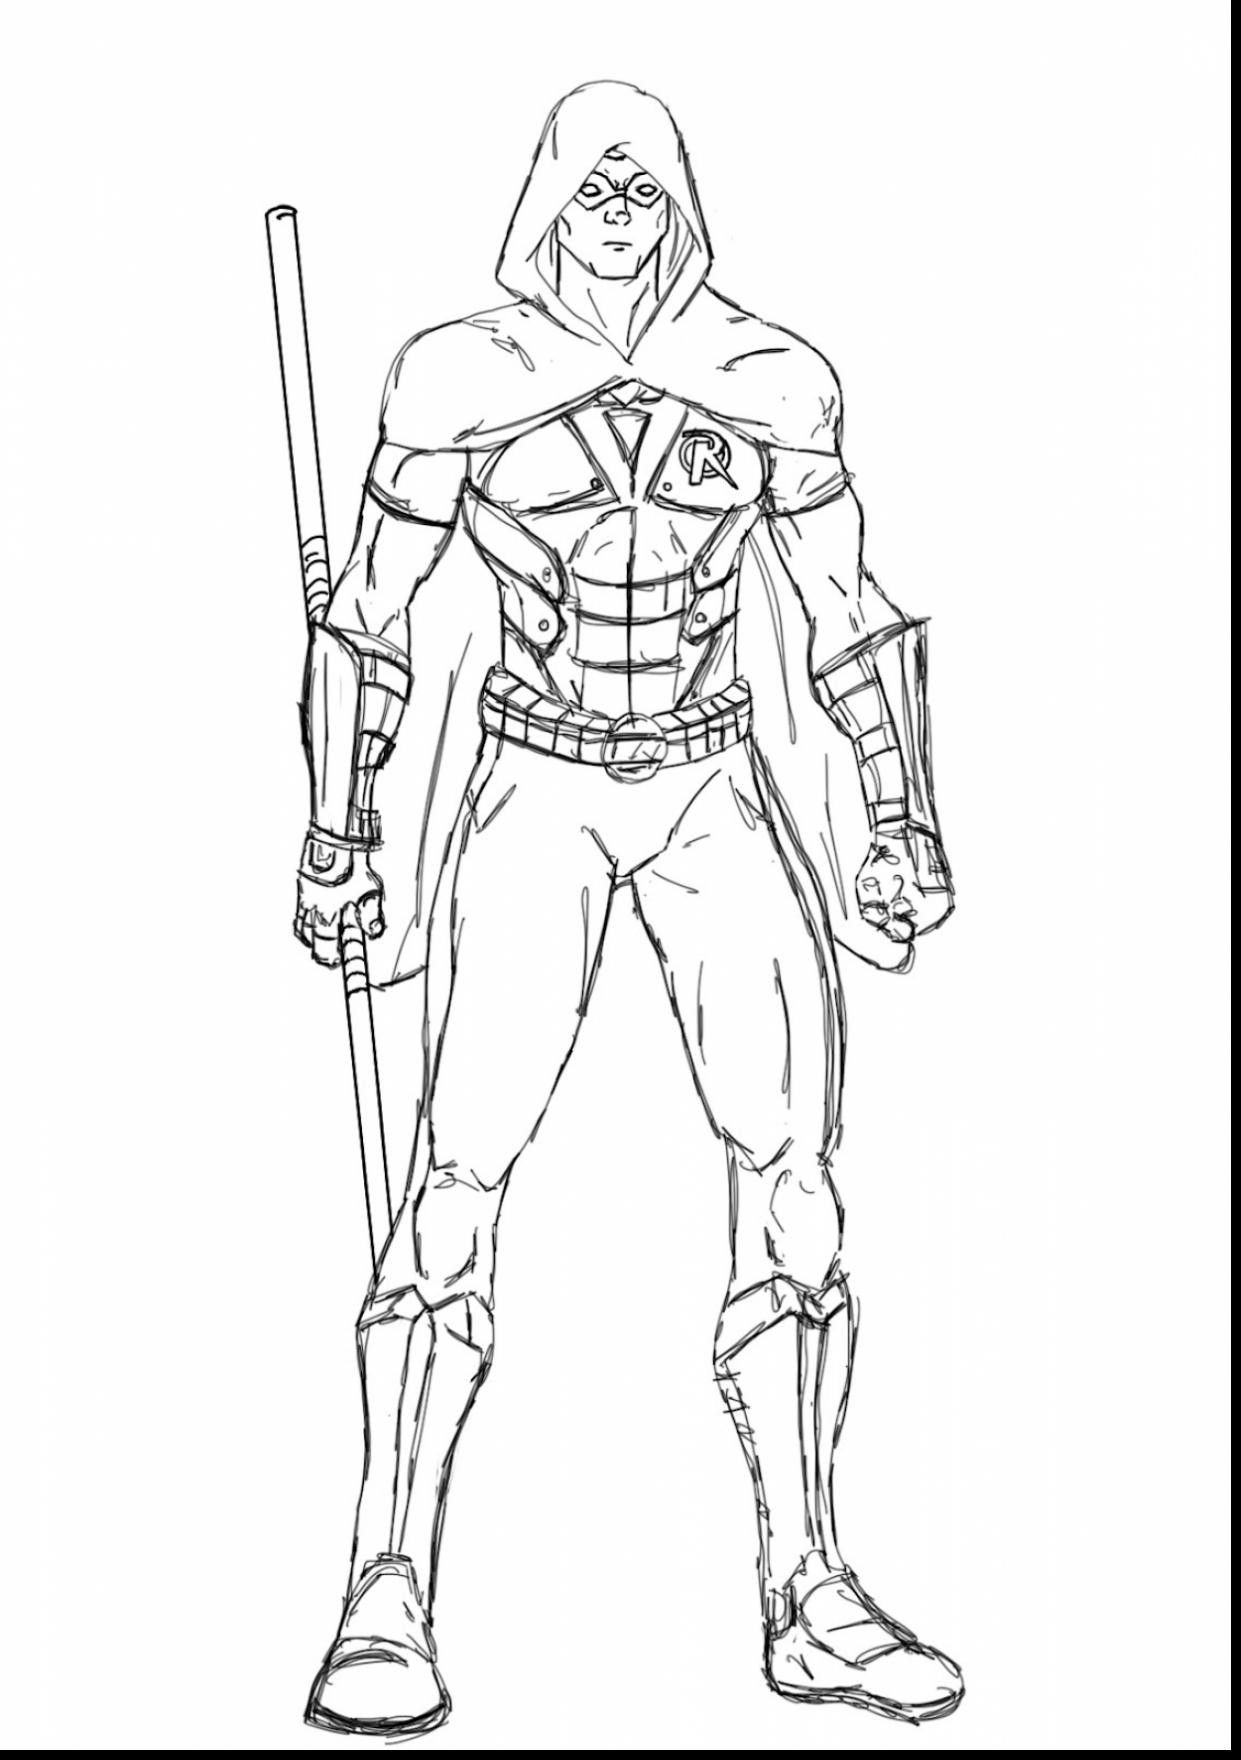 Batman And Nightwing Coloring Pages Collection Superhero Coloring Pages Coloring Pages Superhero Coloring